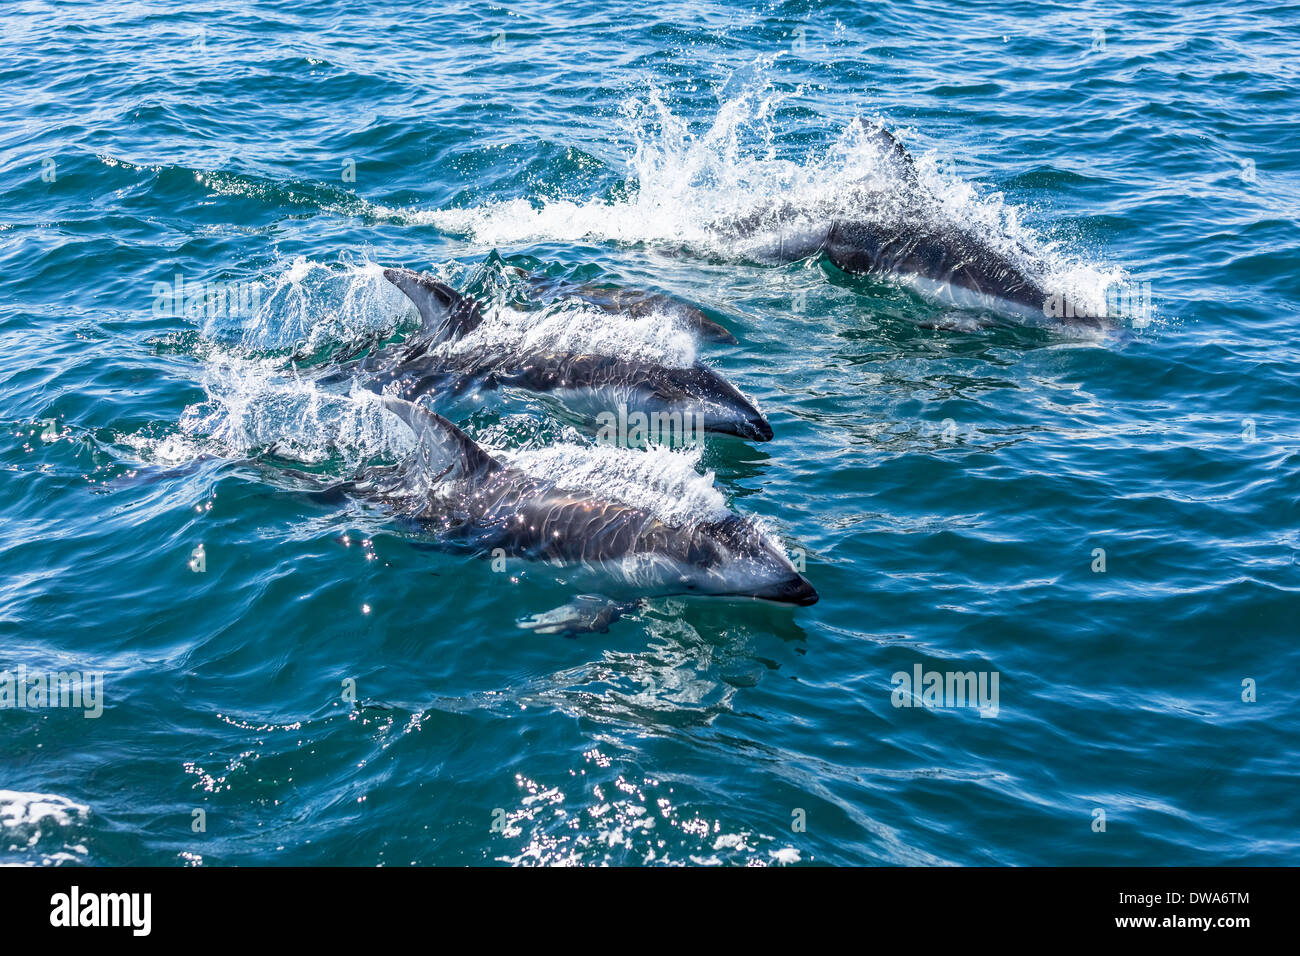 A family of pacific white sided dolphins protect a baby by keeping it in between them while playfully swimming alongside a boat. - Stock Image